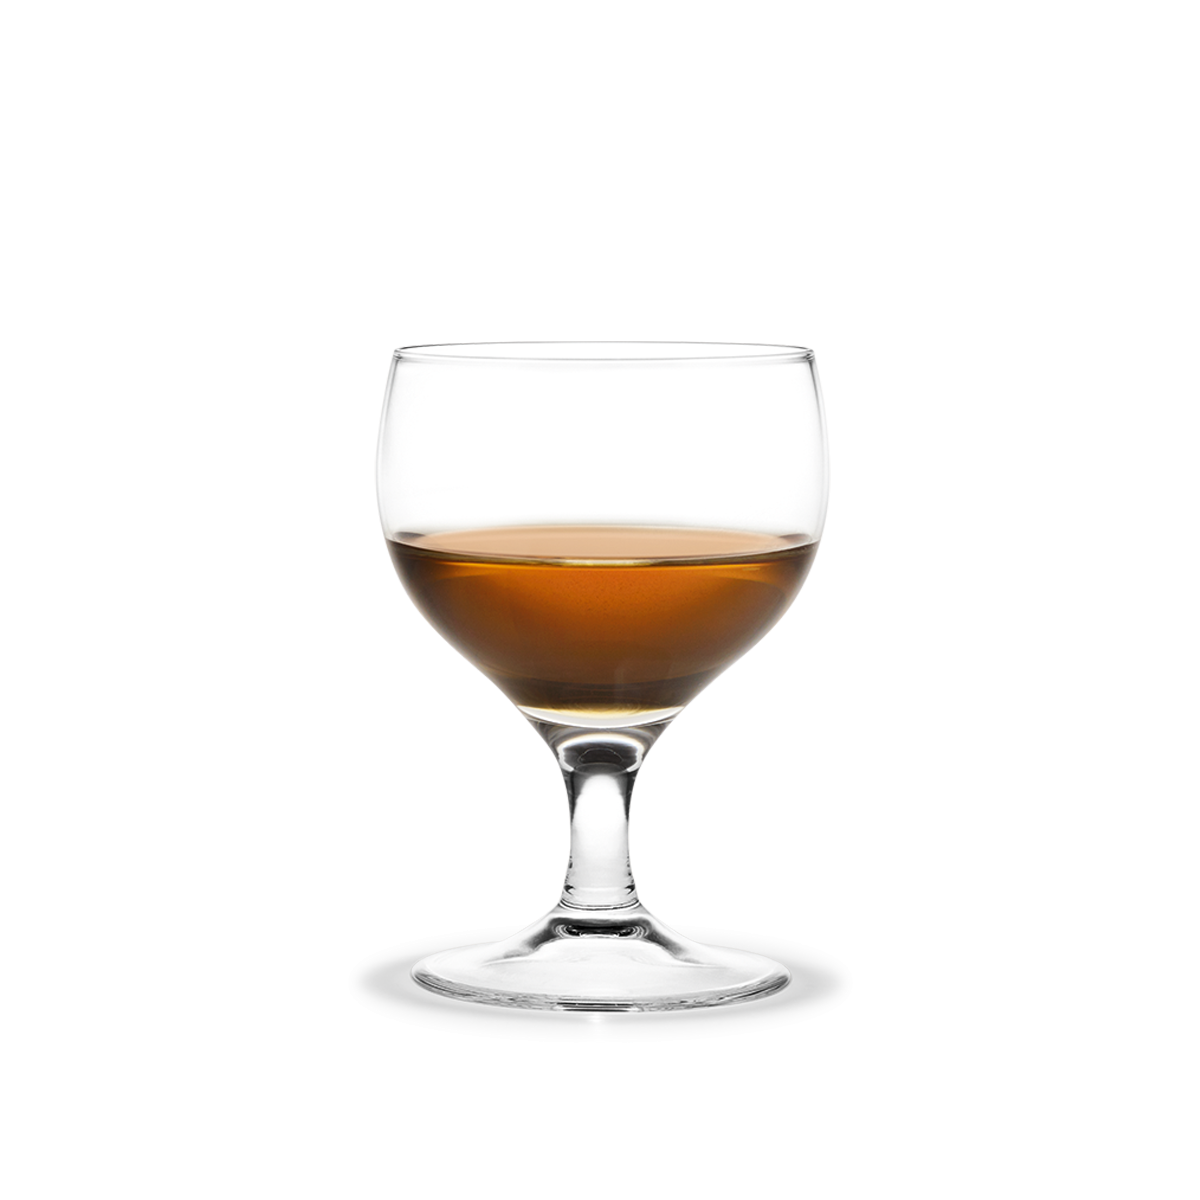 Royal Port/sherry glass